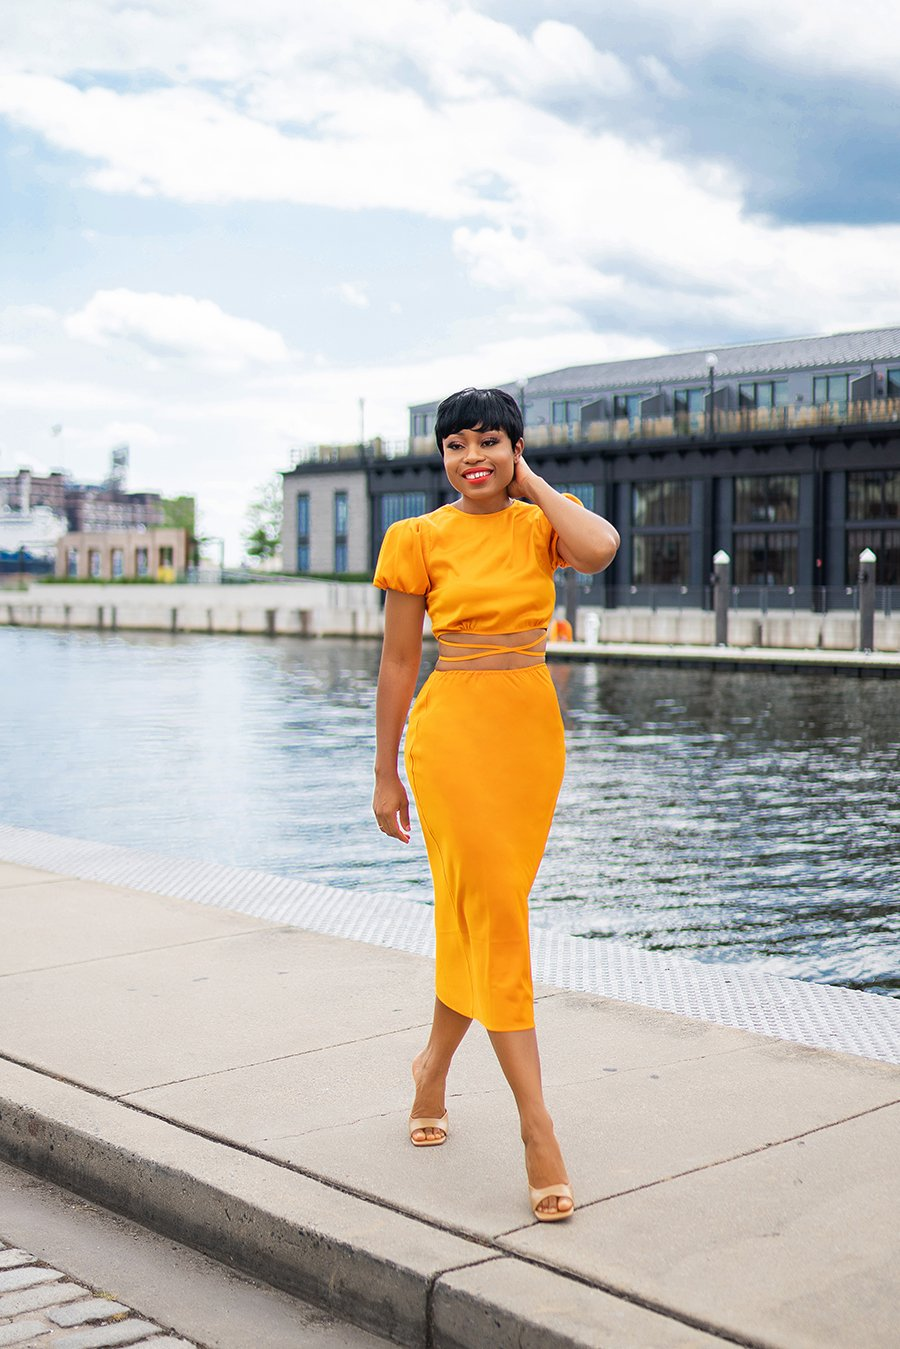 stella-adewunmi-of-jadore-fashion-blog-shares-how-to-style-the-color-orange-in-wayf-crop-top-skirt-baltimore-fells-point